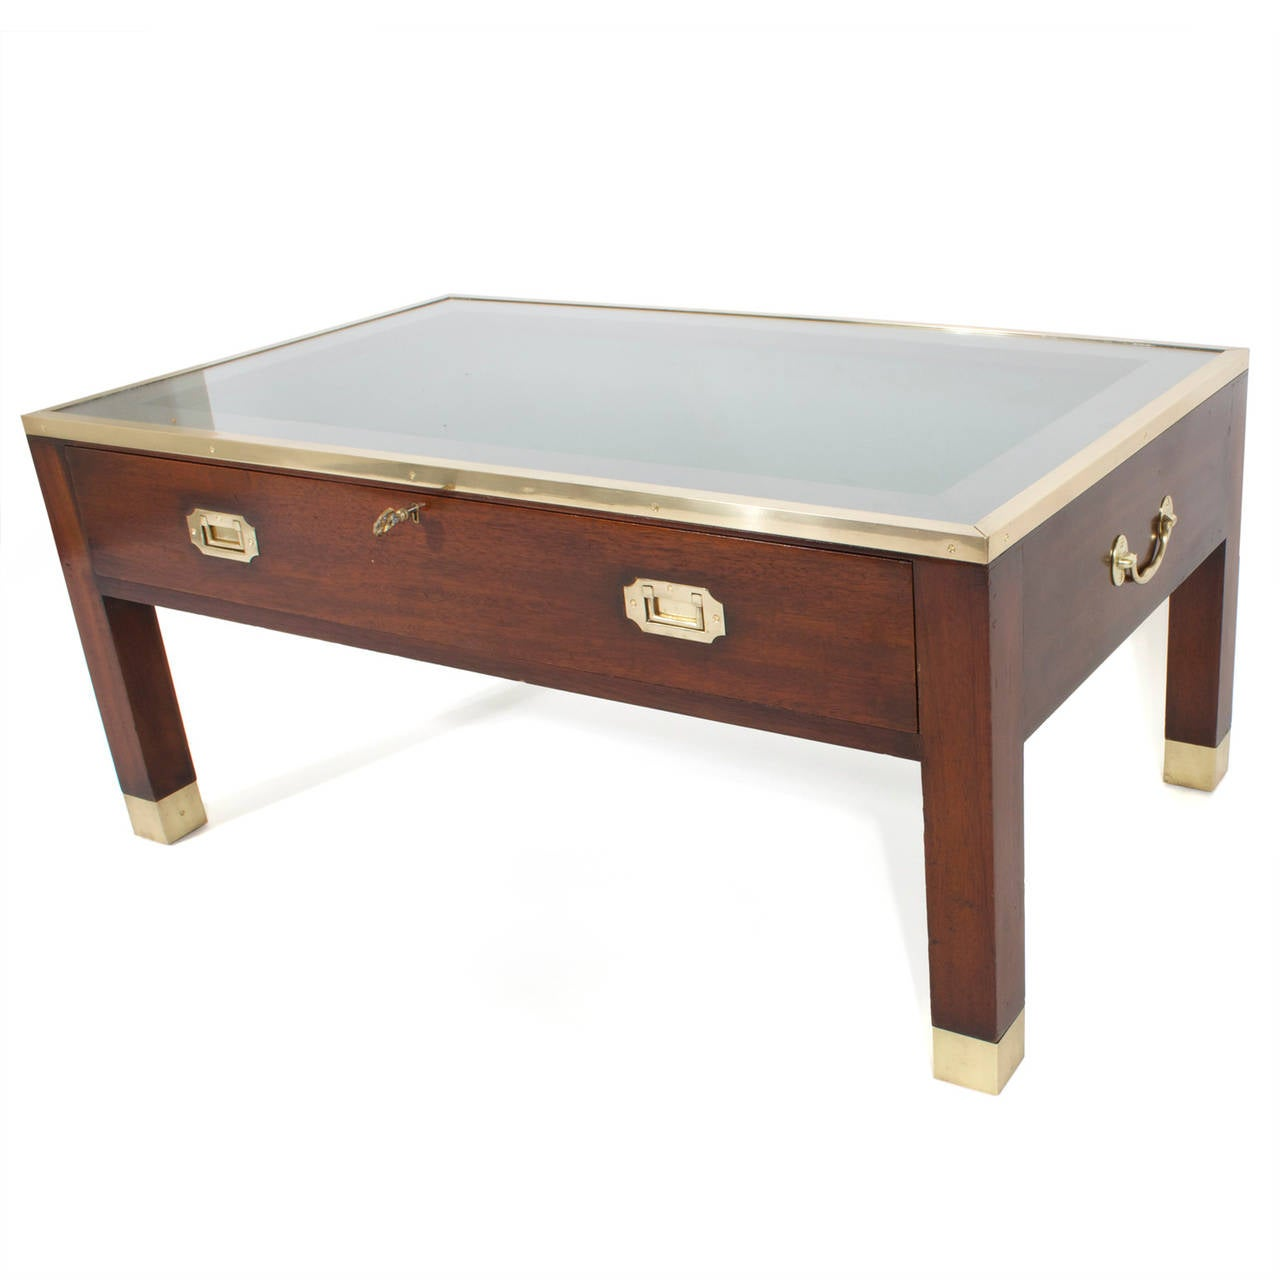 Style Cocktail Or Coffee Table With Display Case For Sale At 1stdibs